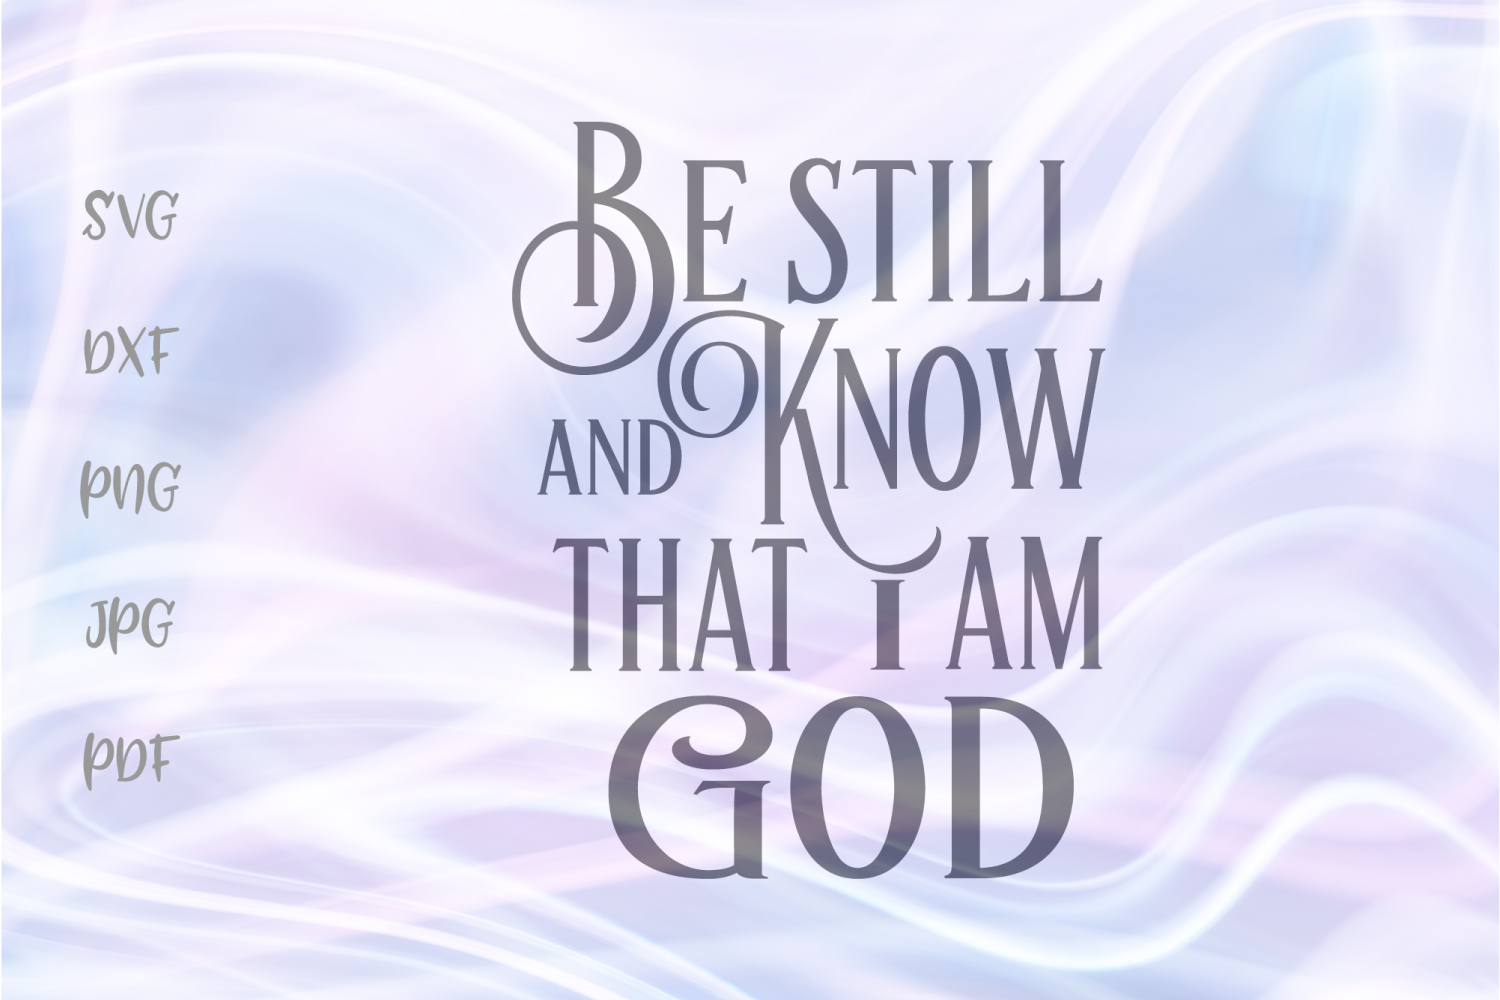 Download Free Be Still And Know That I Am God Graphic By Digitals By Hanna for Cricut Explore, Silhouette and other cutting machines.